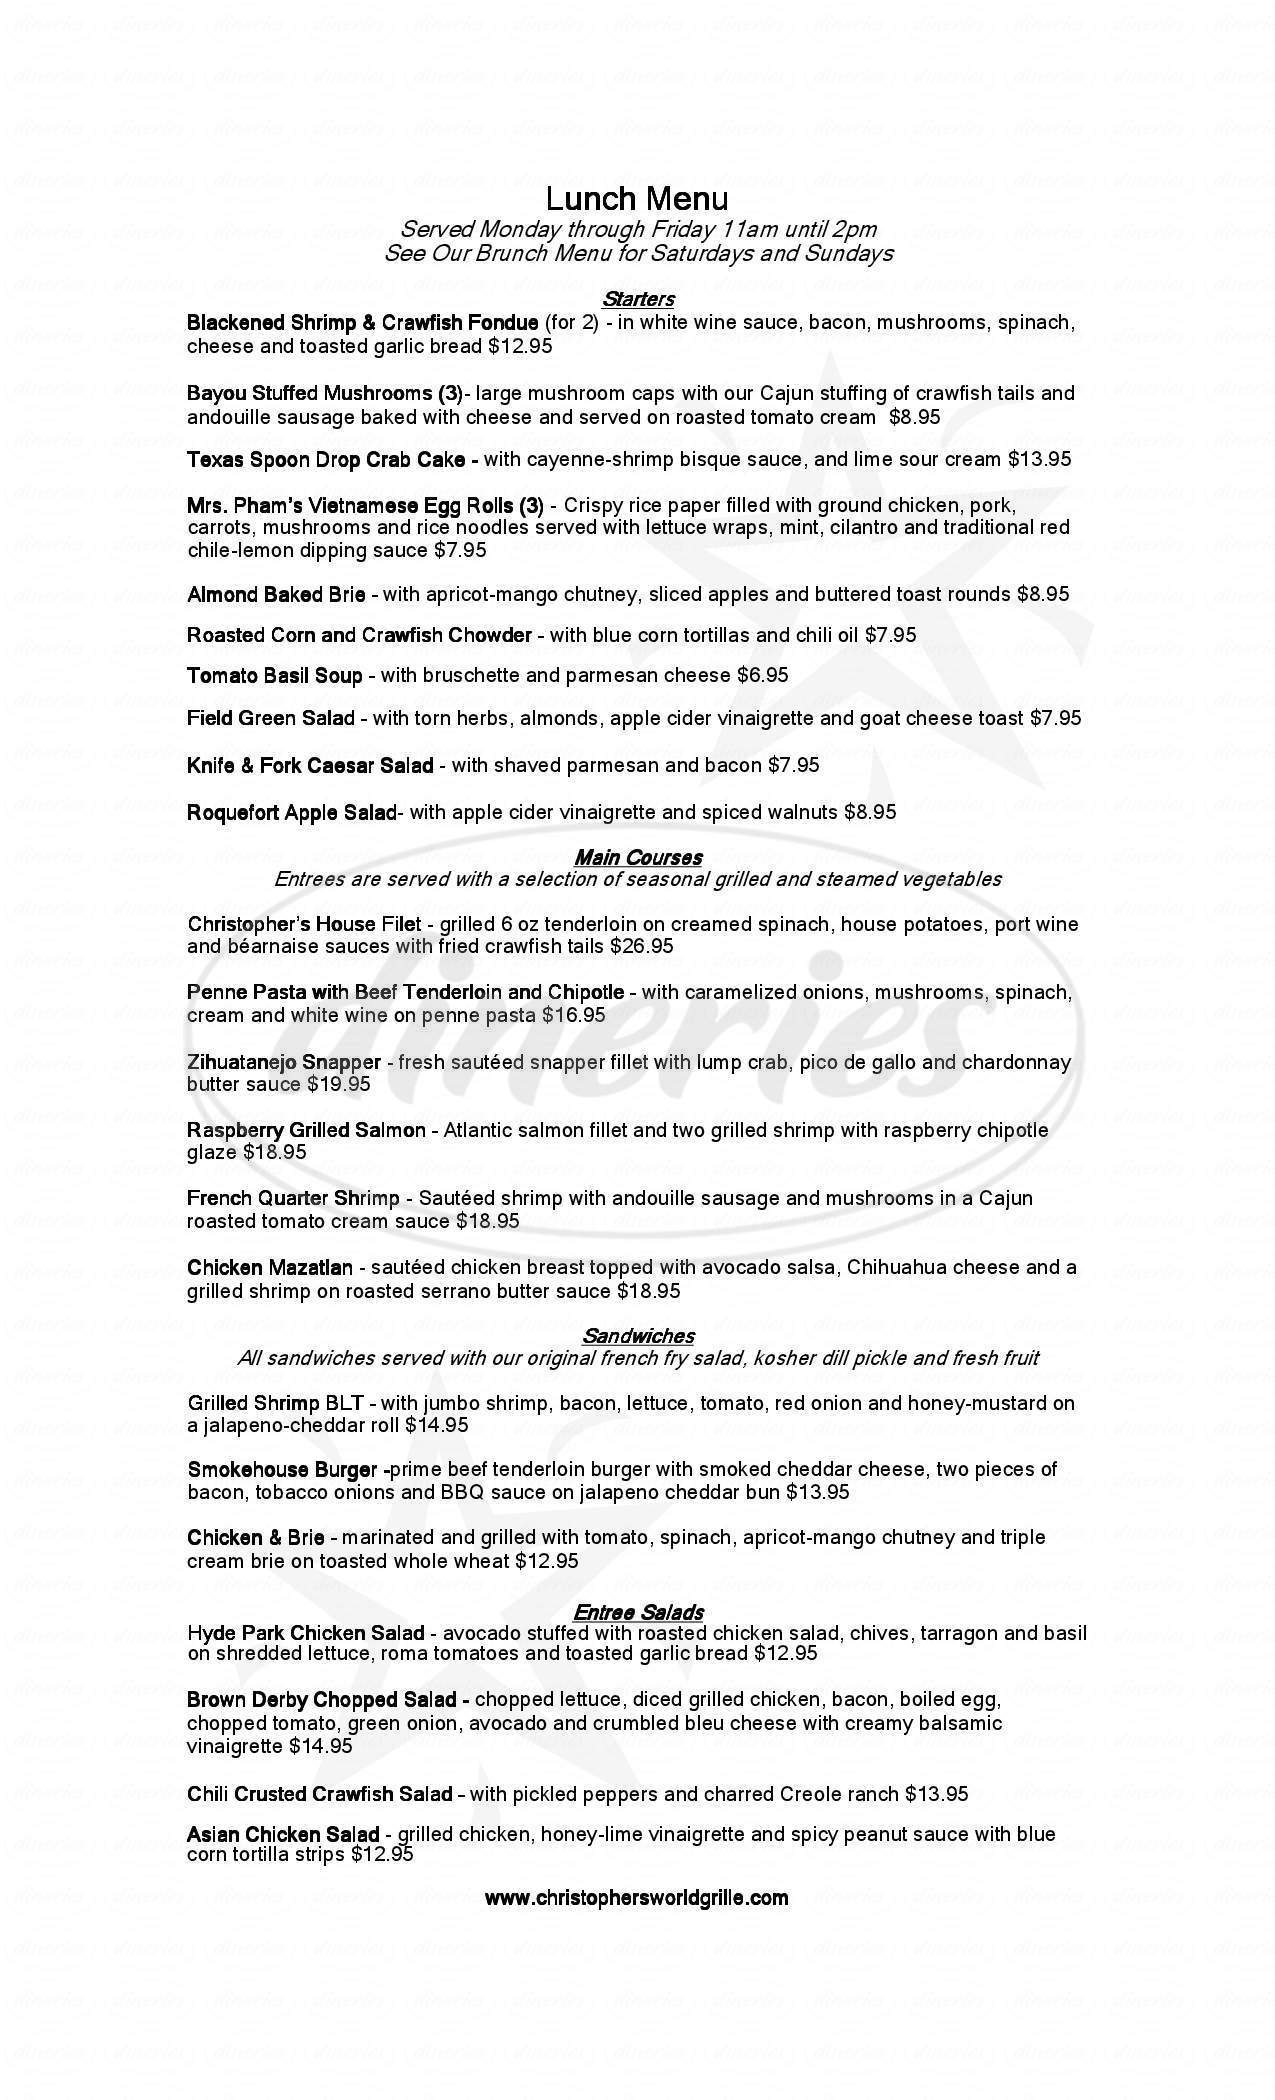 menu for Christopher's World Grille